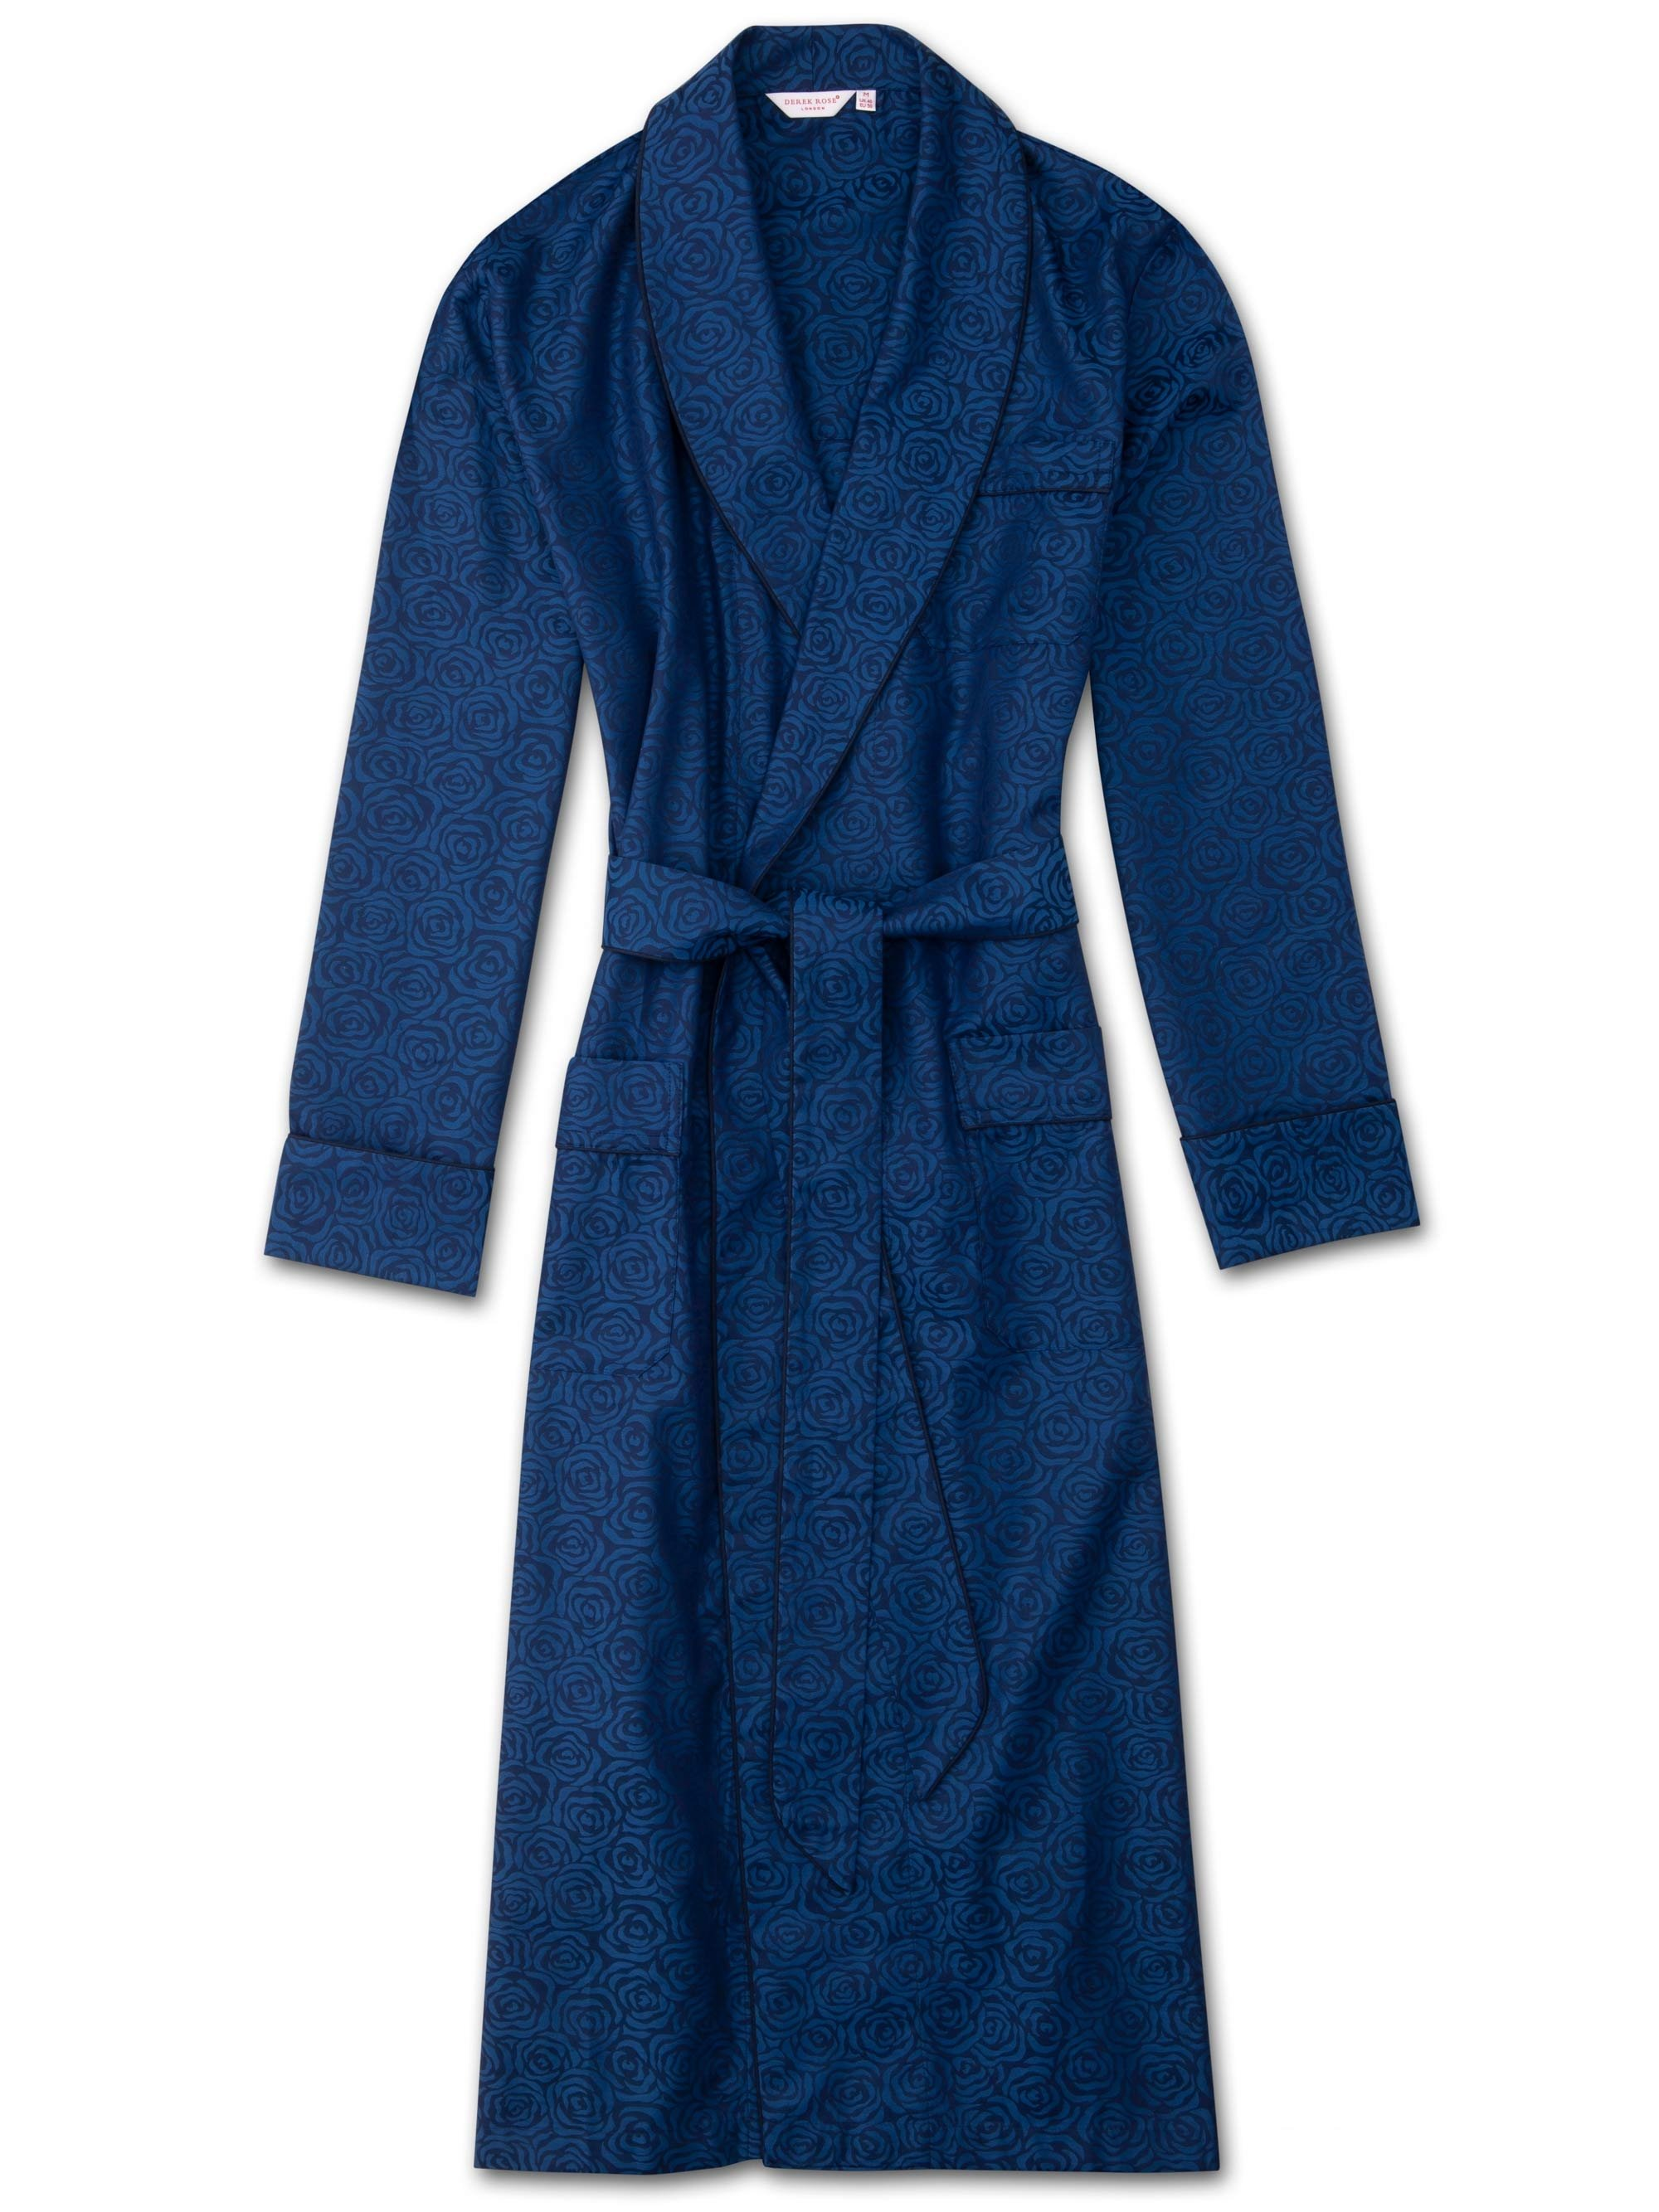 Men's Piped Dressing Gown Paris 17 Cotton Jacquard Navy